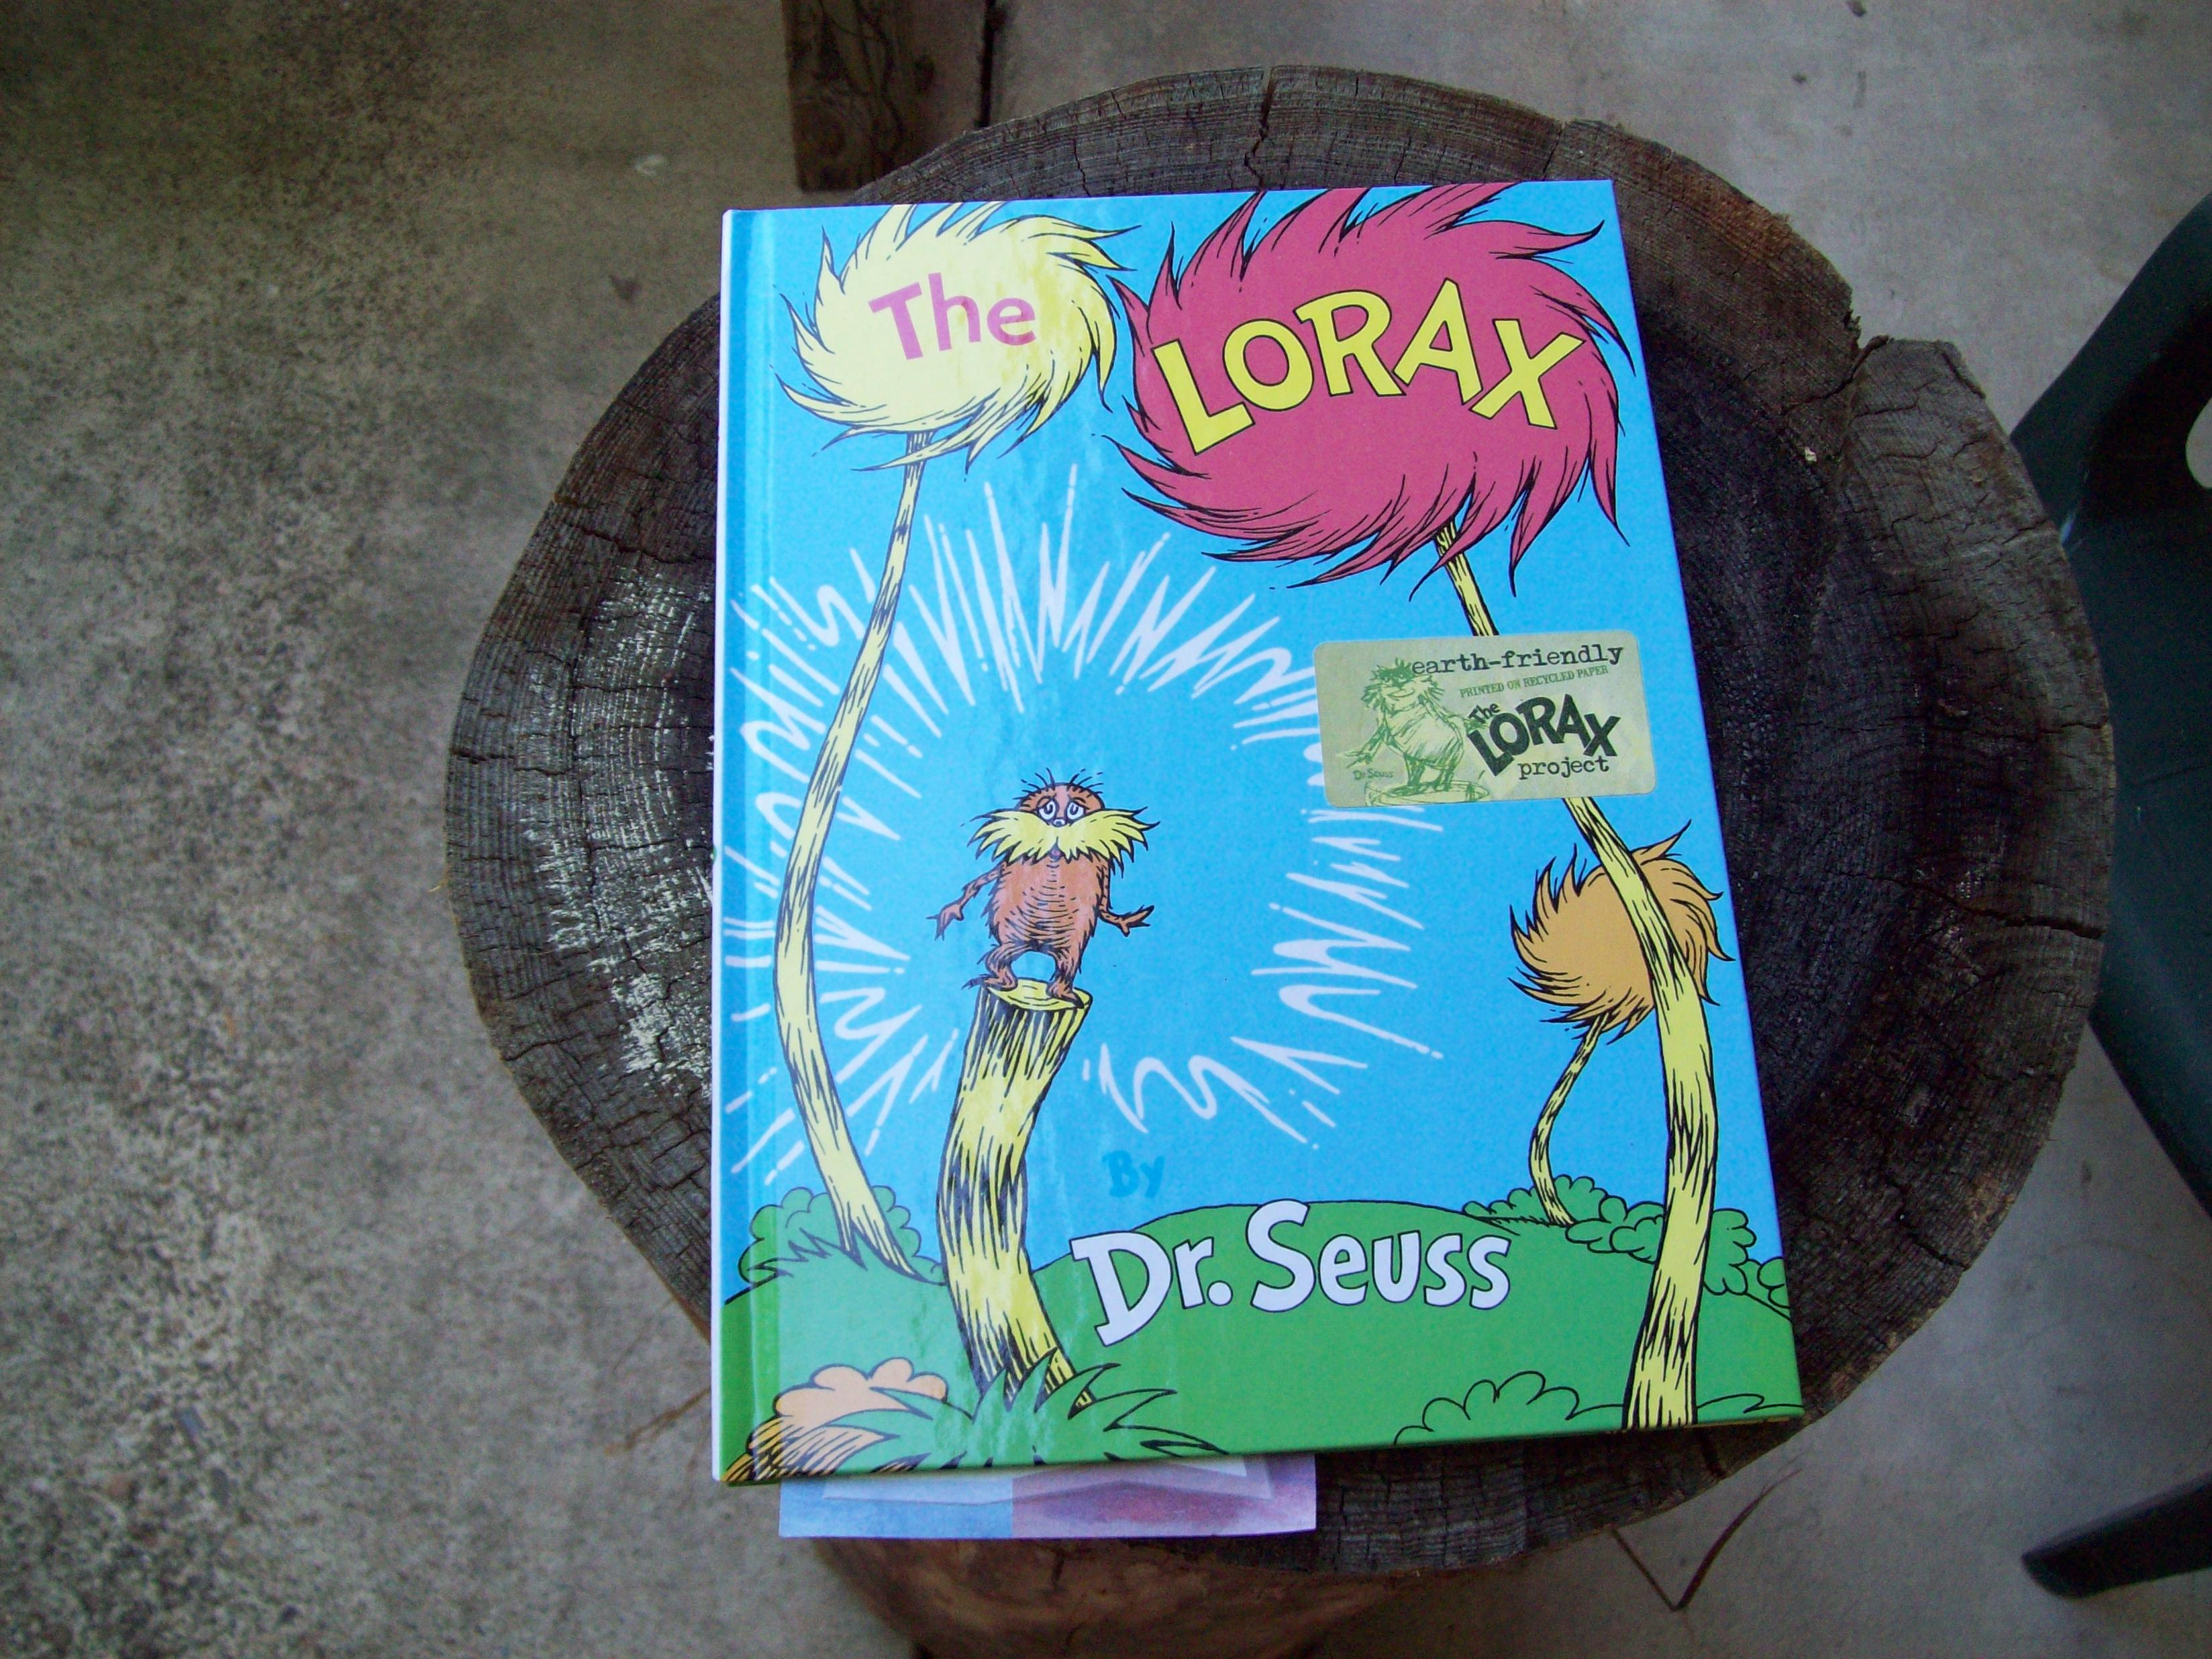 The Lorax, by Dr. Seuss